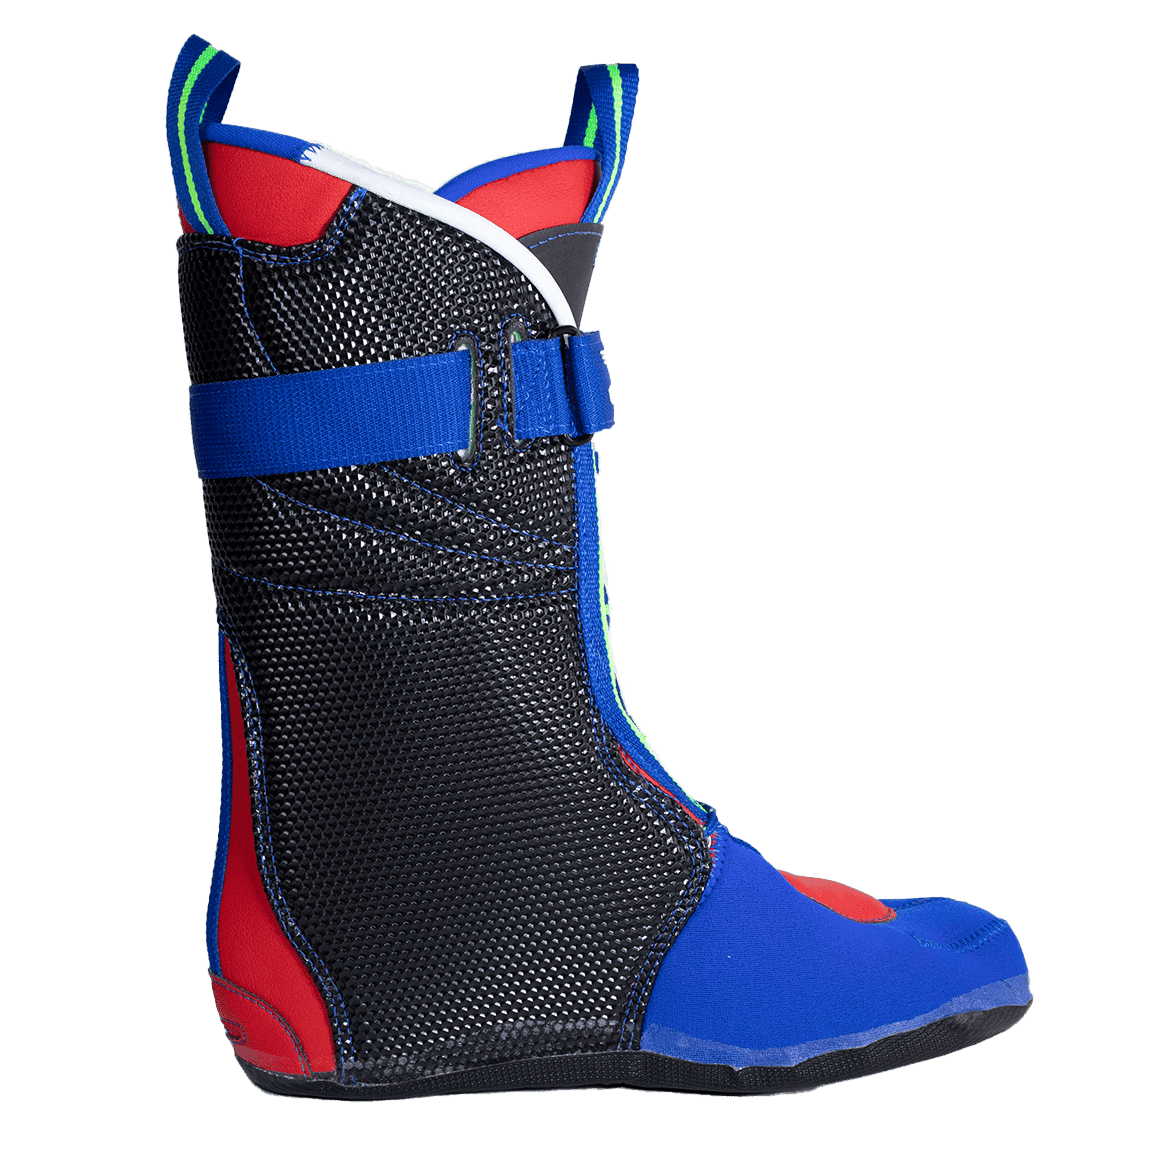 WorldCup ski boot liners